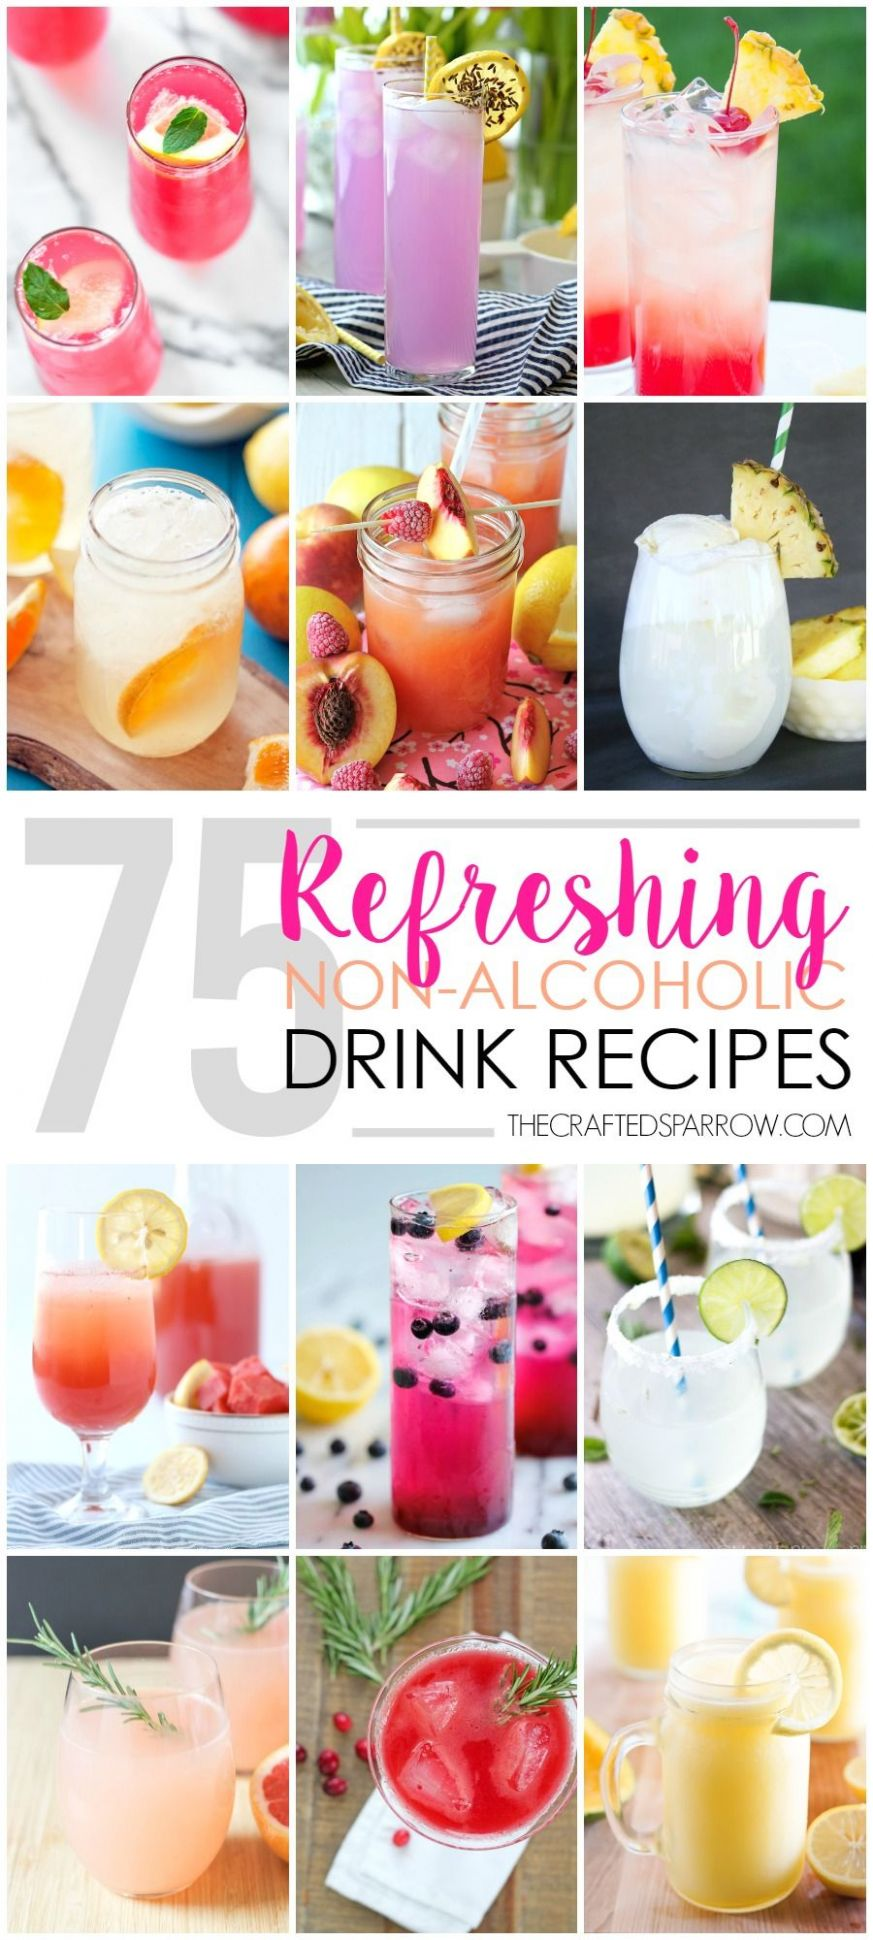 9 Refreshing Non-Alcoholic Drink Recipes | Drinks alcohol recipes ..